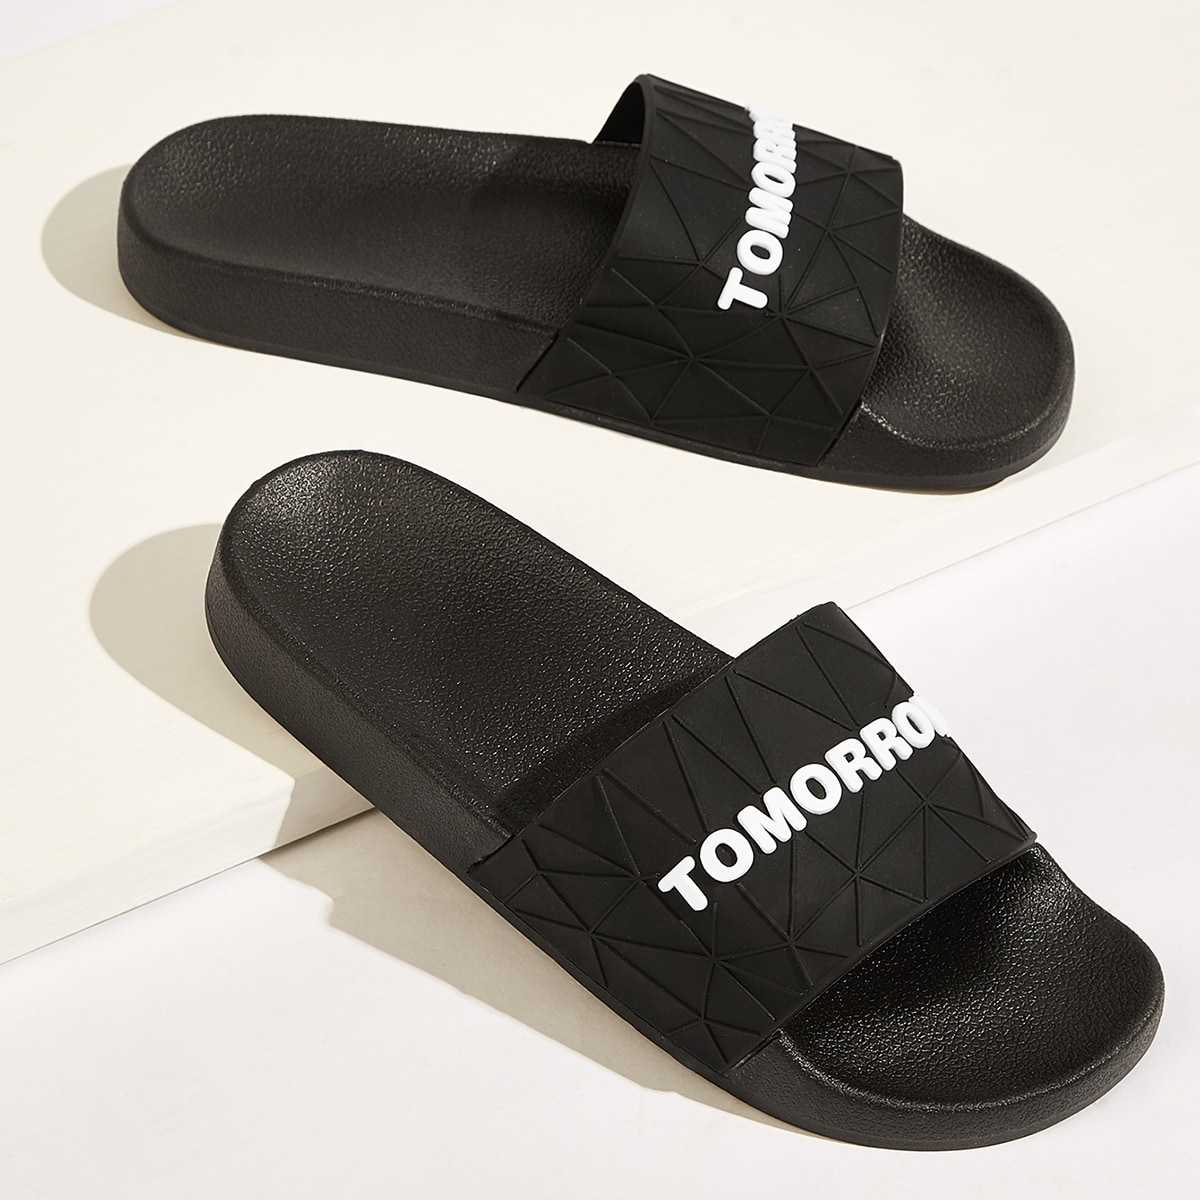 Guys Letter Decor Open Toe Sliders in Black and White by ROMWE on GOOFASH